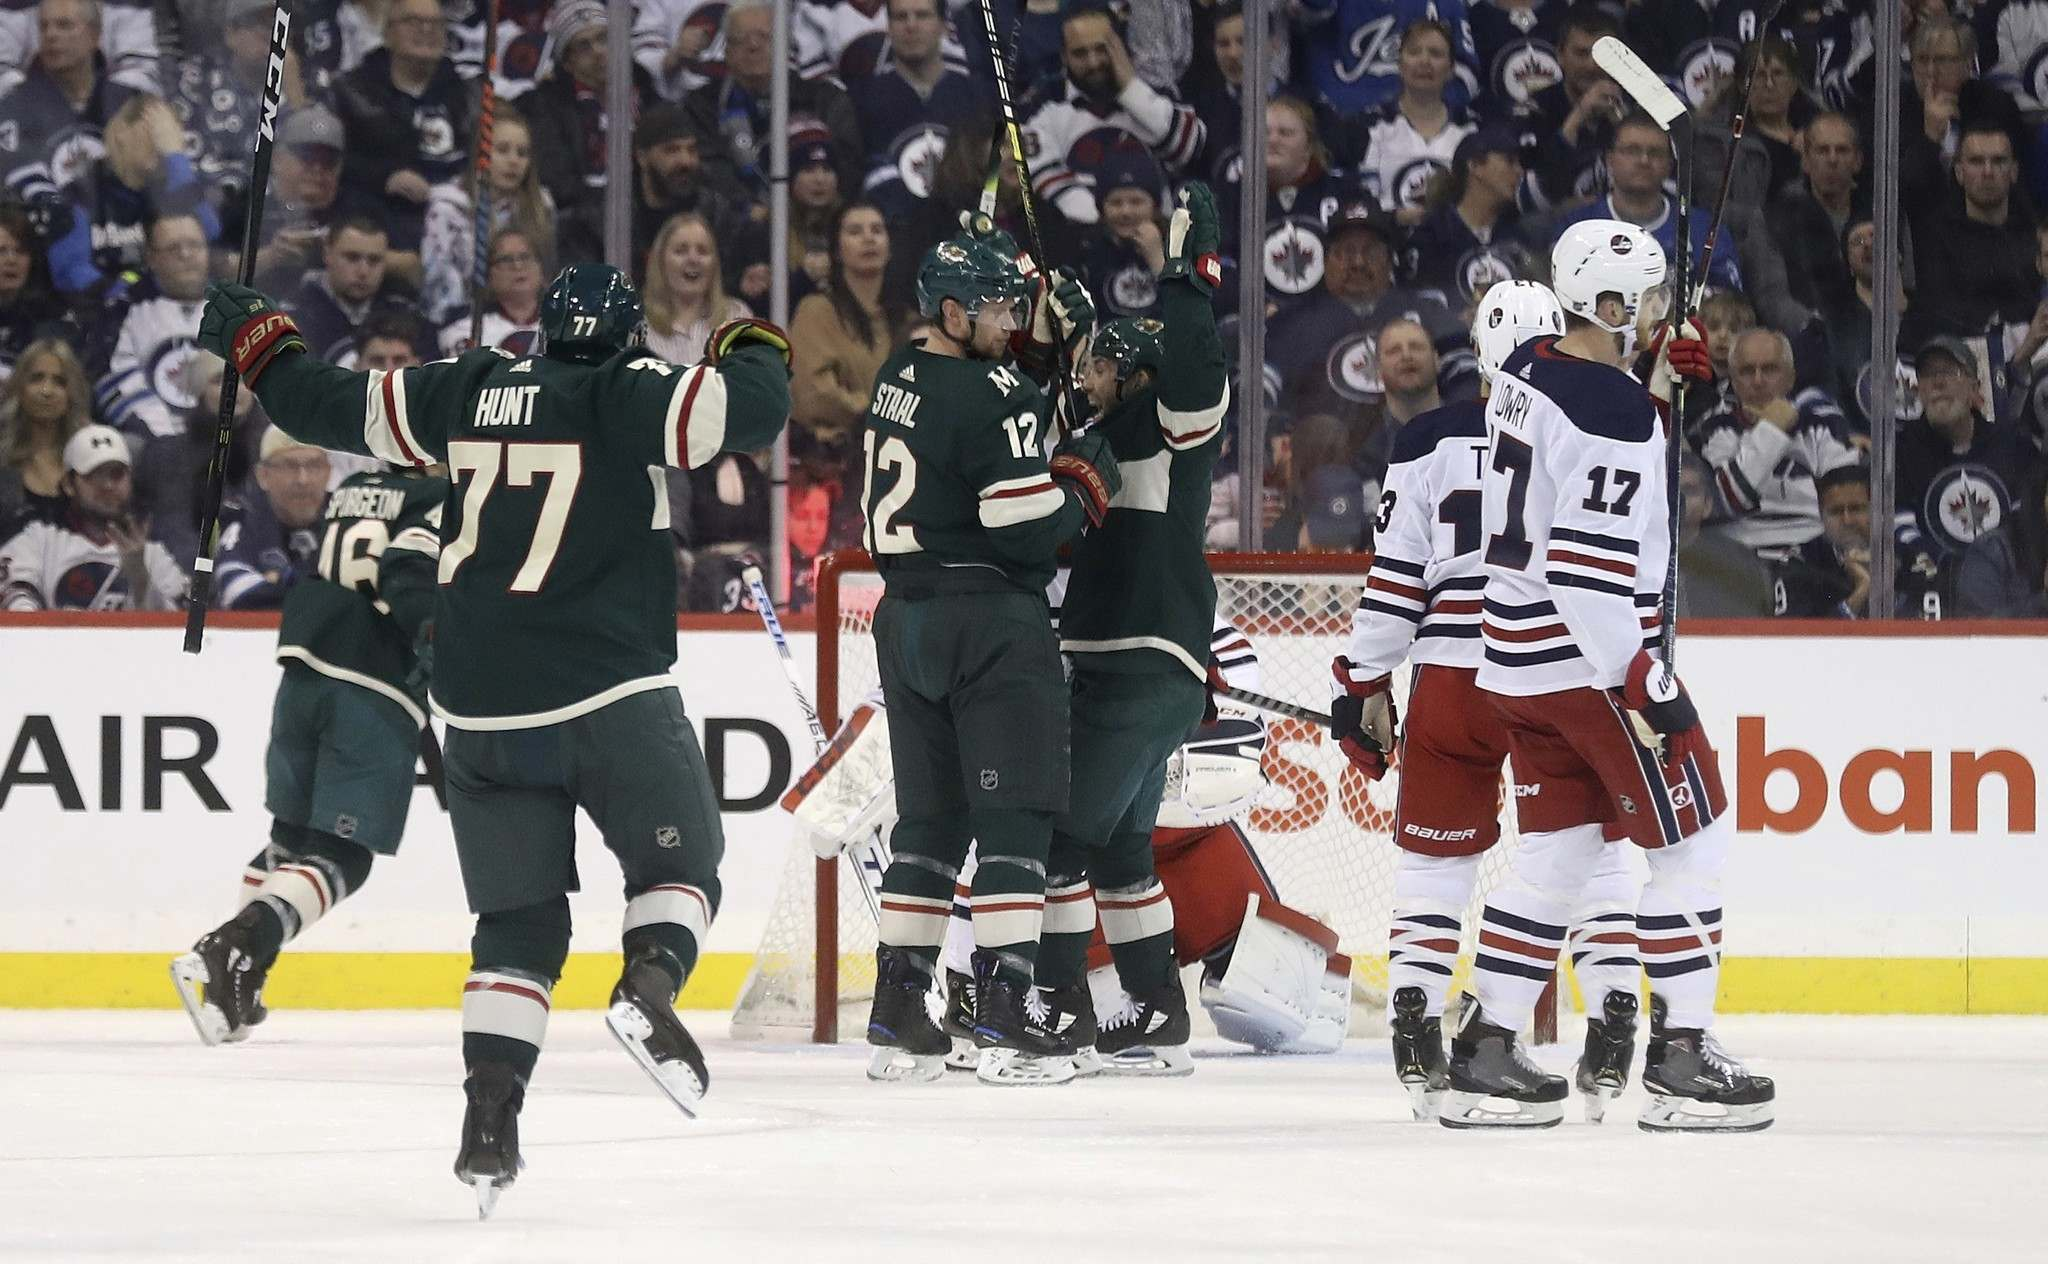 Minnesota&#39;s Brad Hunt celebrates the Wild&#39;s first goal of the night, which was the team&#39;s only goal until the final 90 seconds of the game. (Trevor Hagan / The Canadian Press)</p>